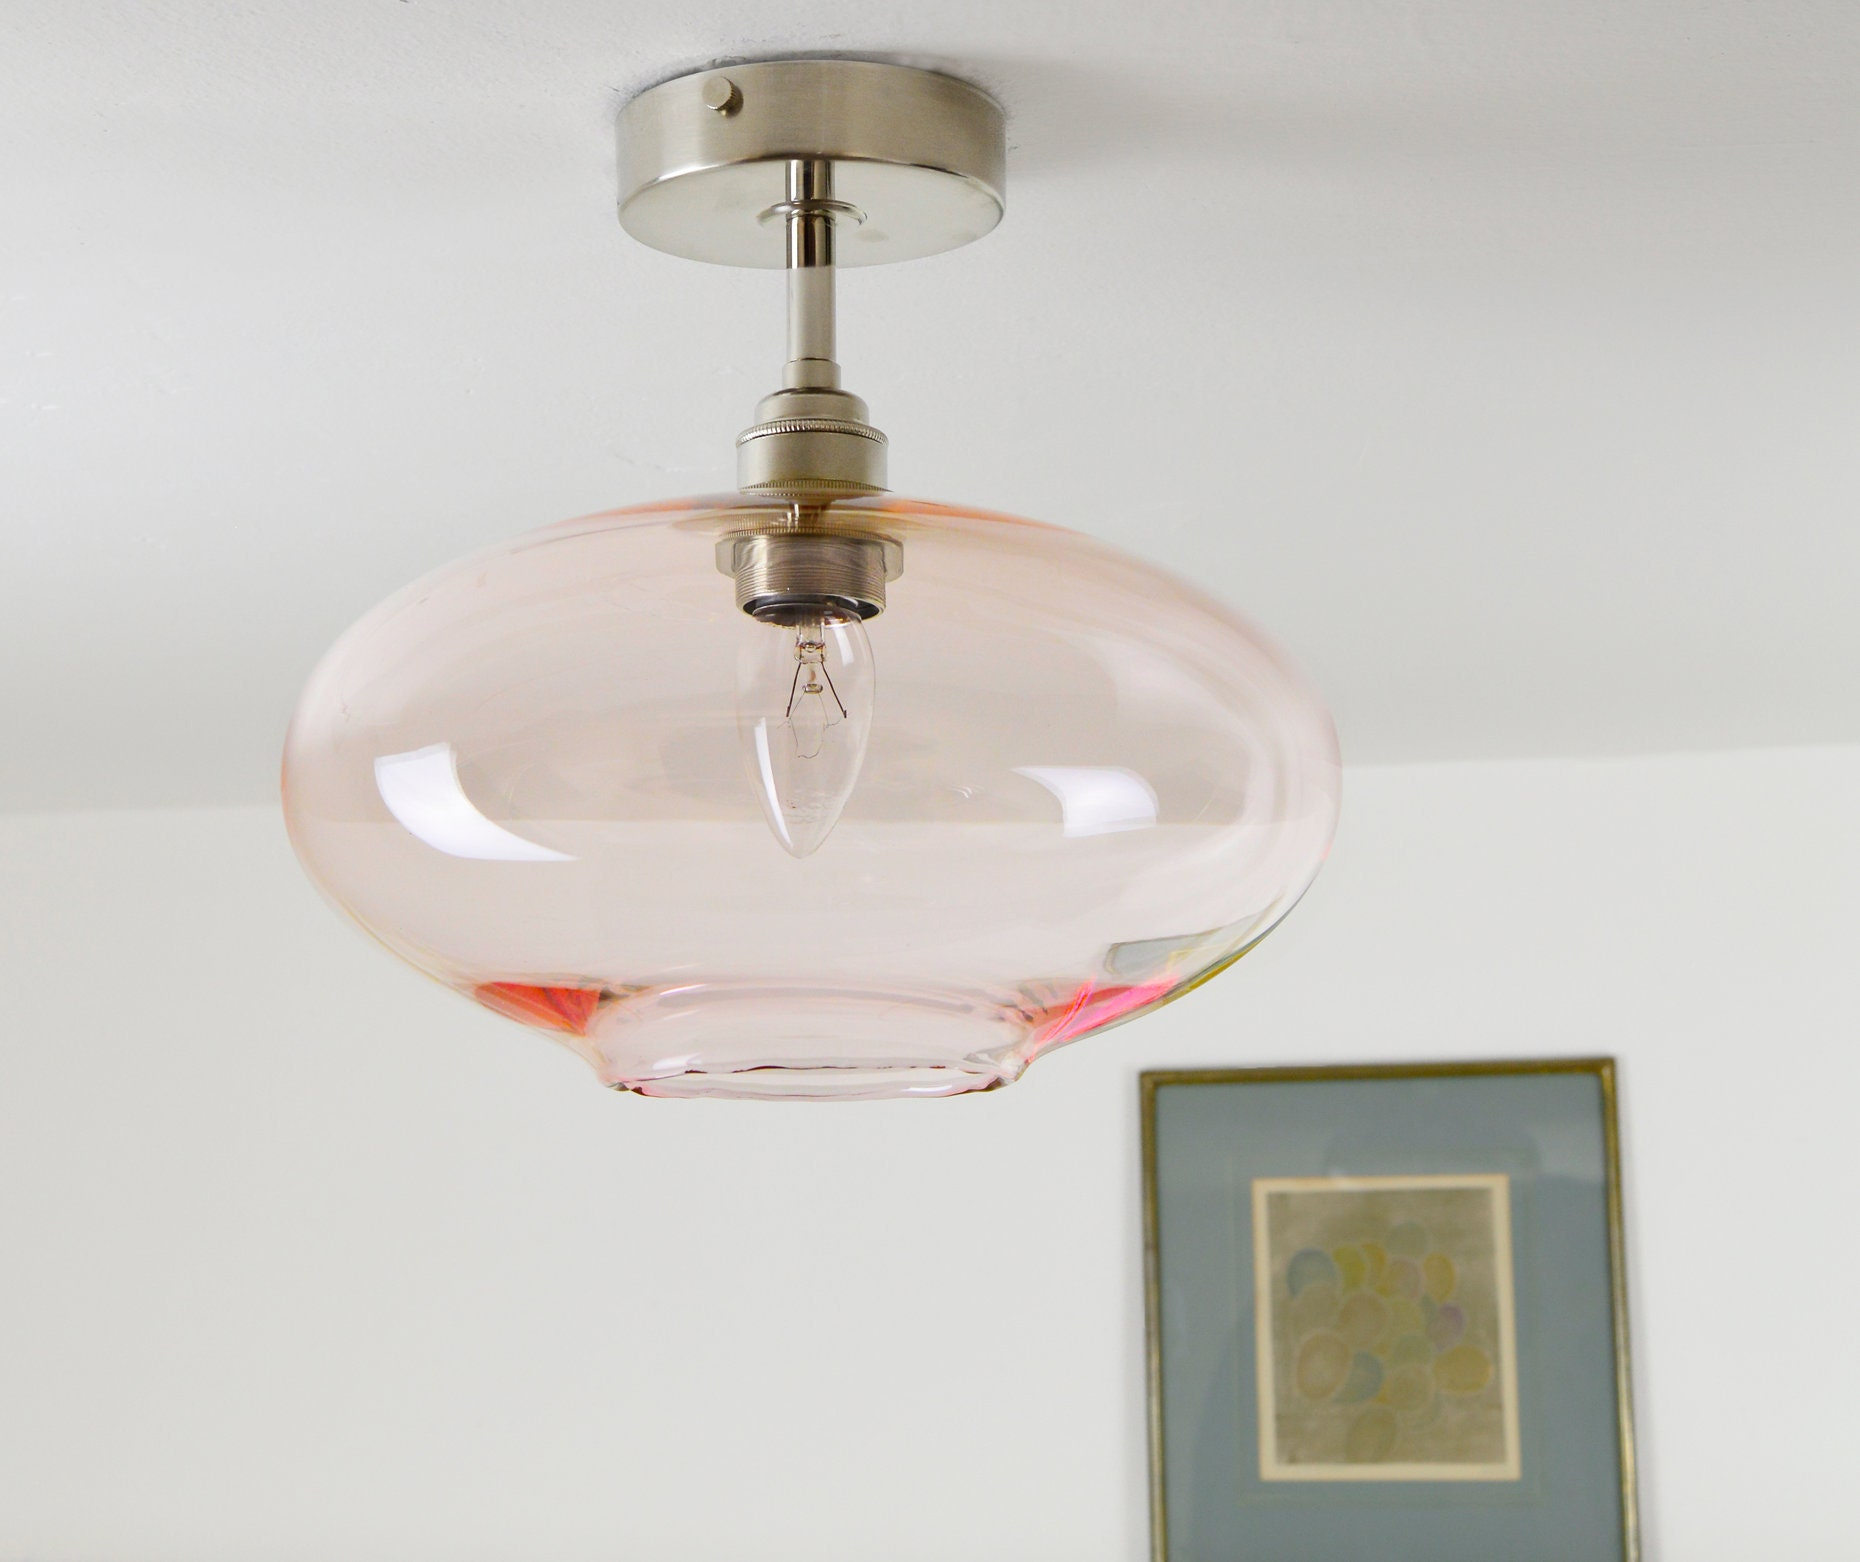 Hand blown glass lighting fixtures Pottery Barn 50 Manchester Hot Glass Low Ceiling Hand Blown Glass Lighting Light Pink Mid Century Etsy